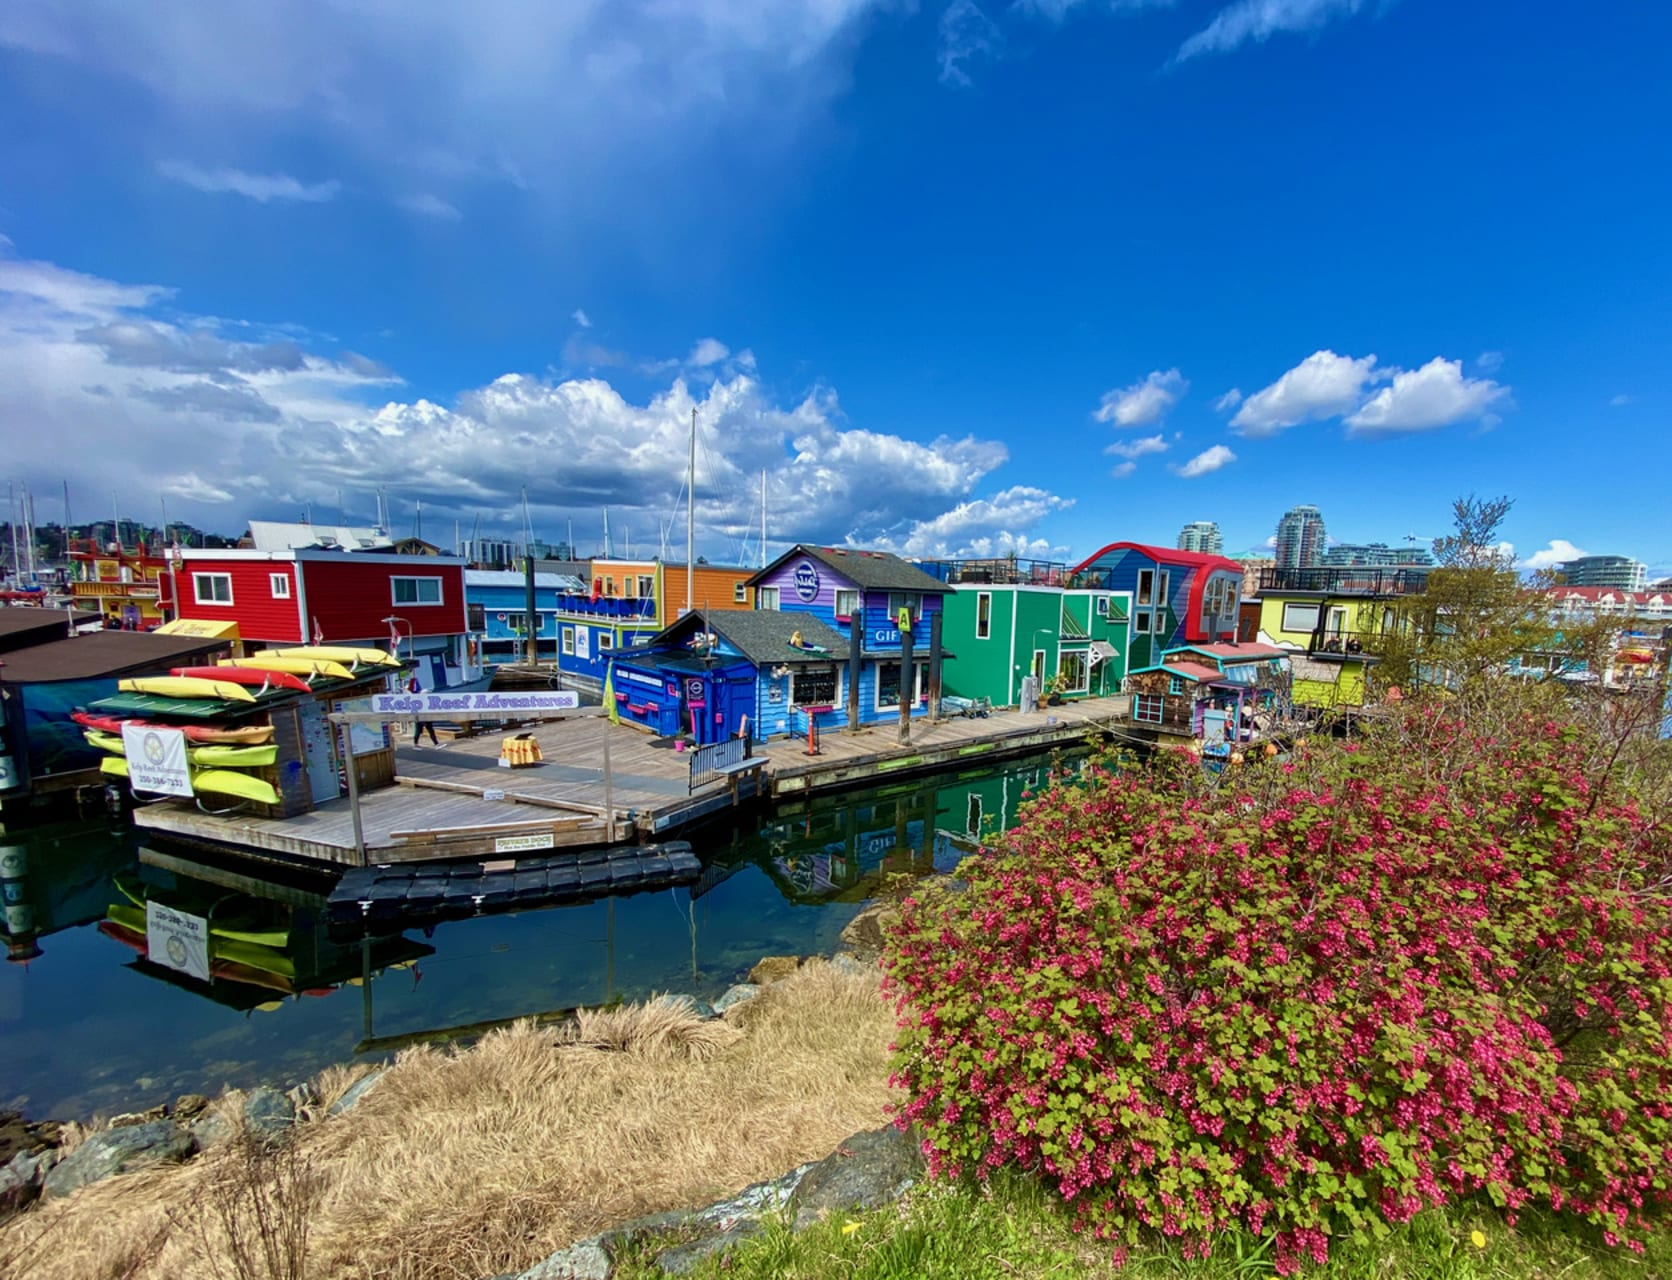 Victoria, BC - Fisherman's Wharf to Victoria's Inner Harbour by Boat or Trail